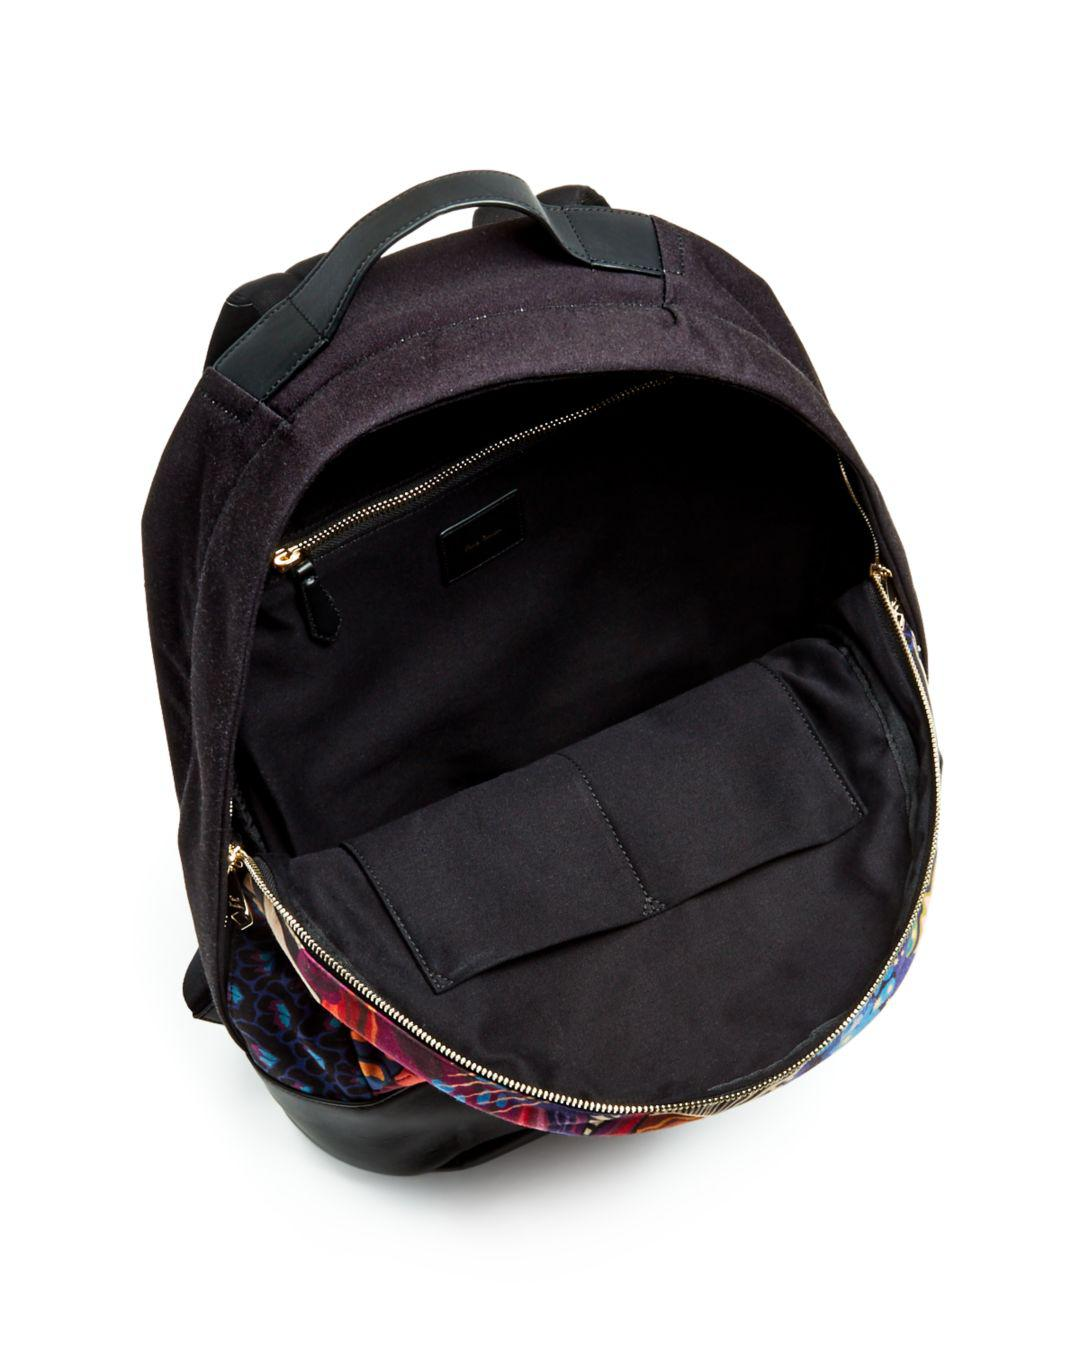 Lyst - Paul Smith Dreamer Print Leather Backpack in Black for Men 90b5bc939